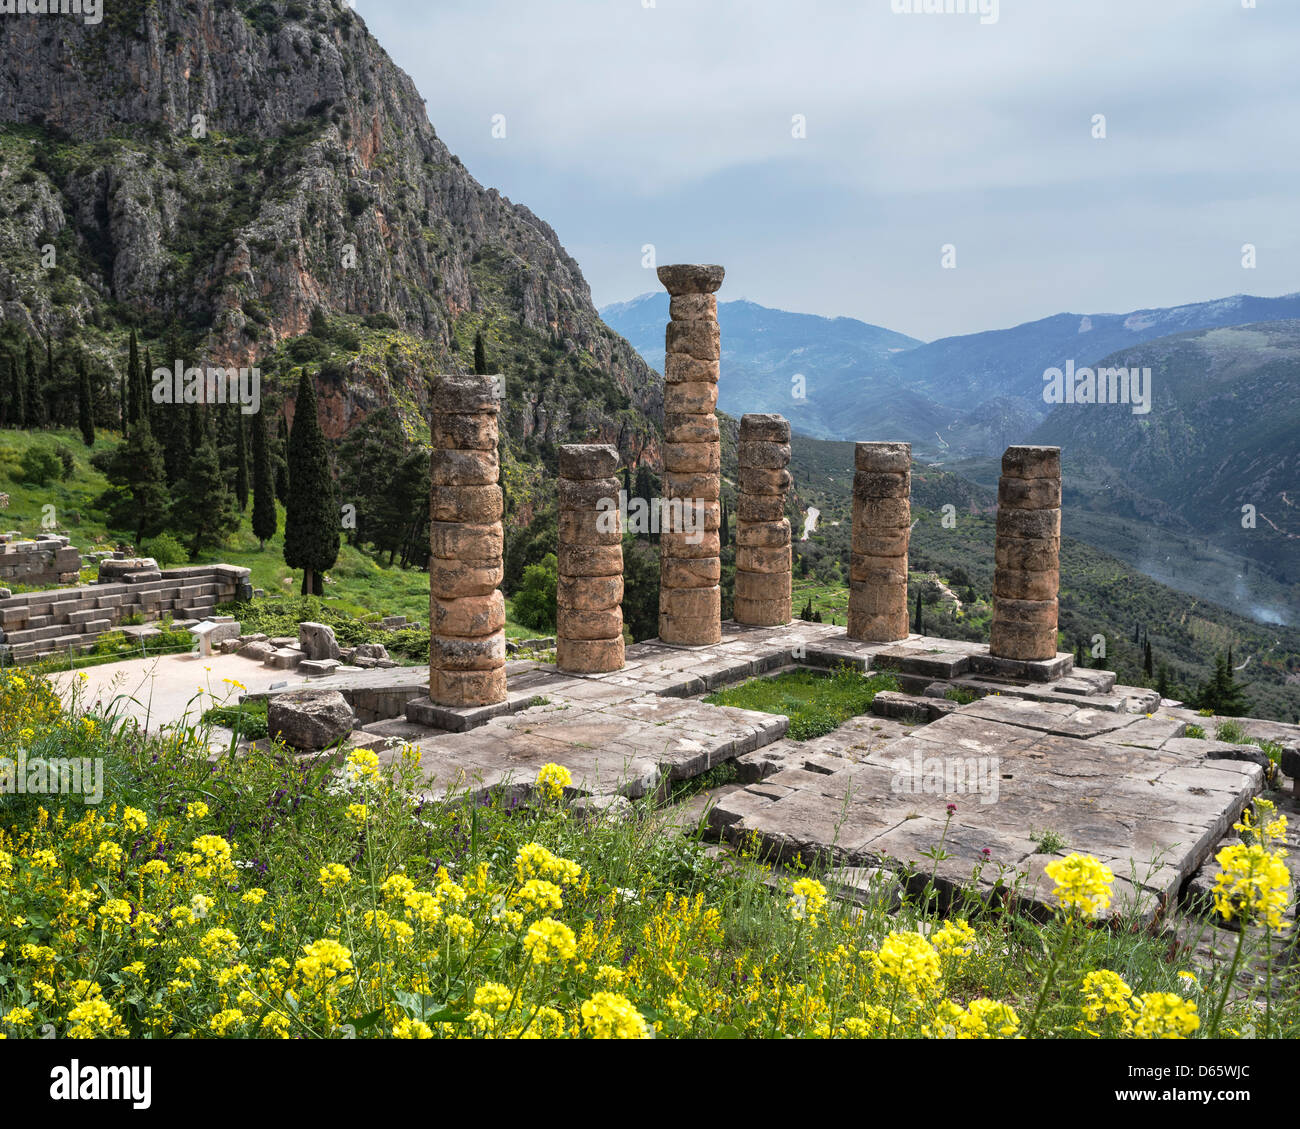 Looking down on the Temple of Apollo at the ancient site of Delphi in Thessaly, Central Greece Stock Photo